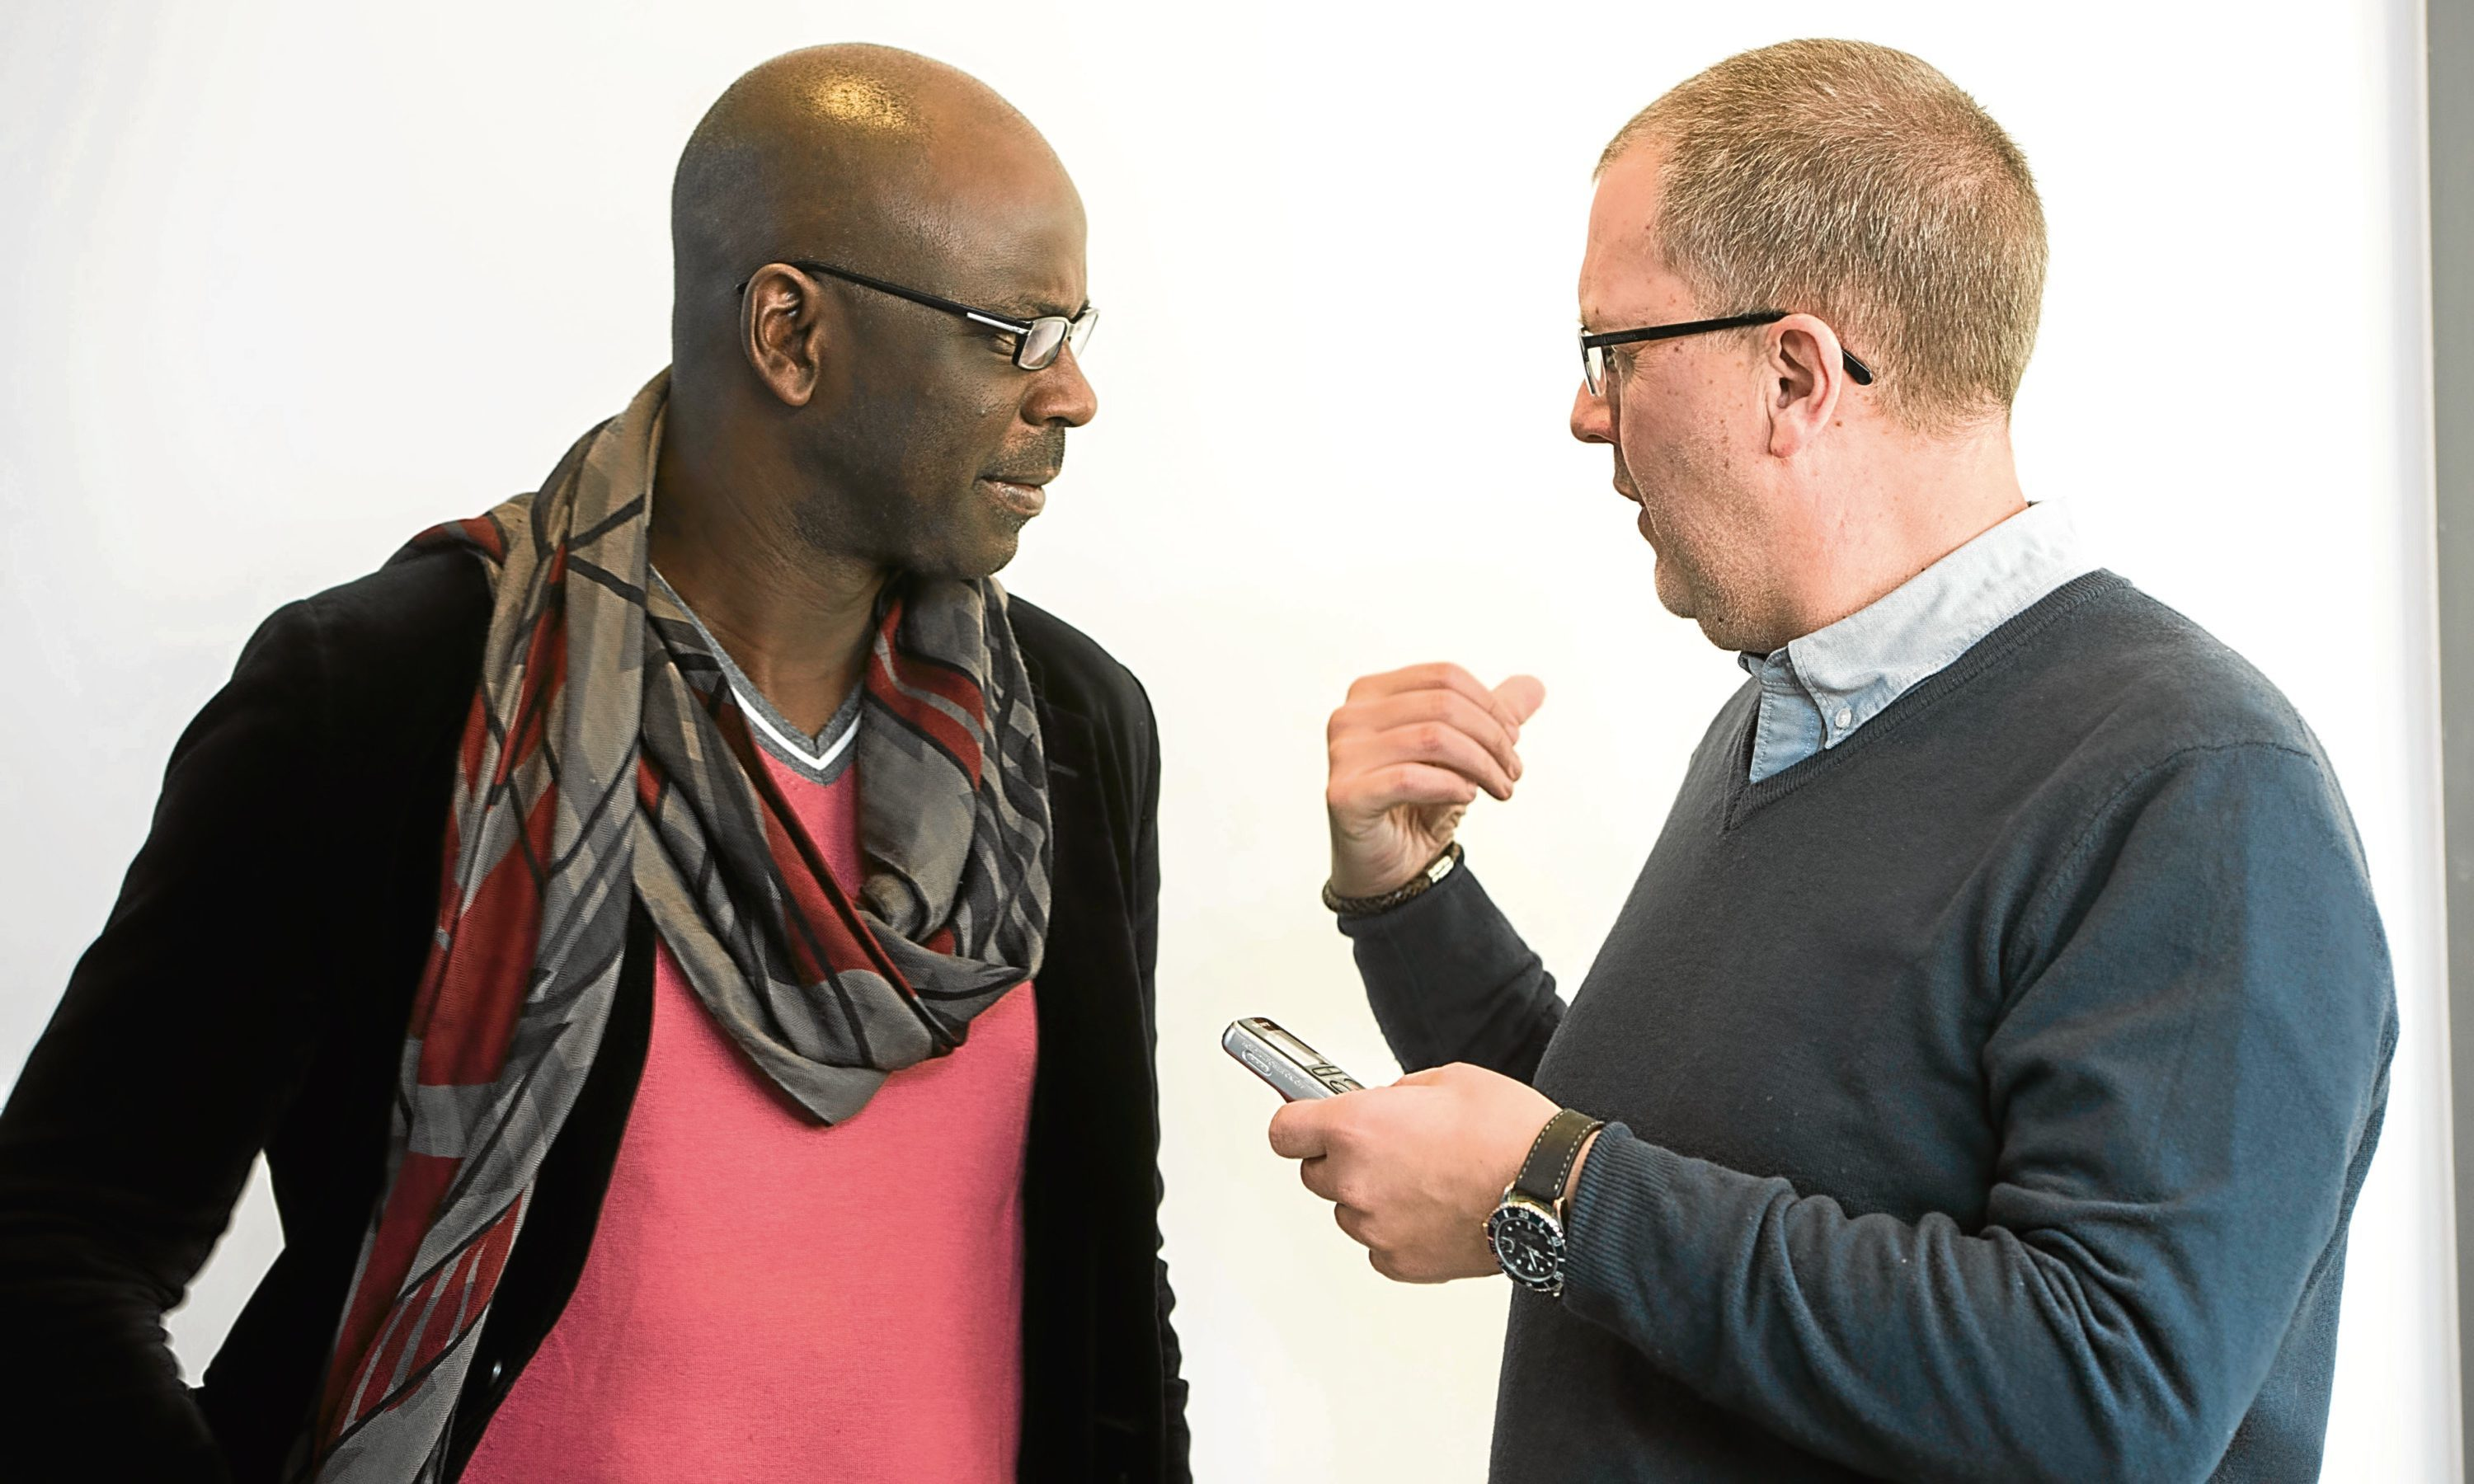 Lilian Thuram is interviewed by Tele sports writer Tom Duthie